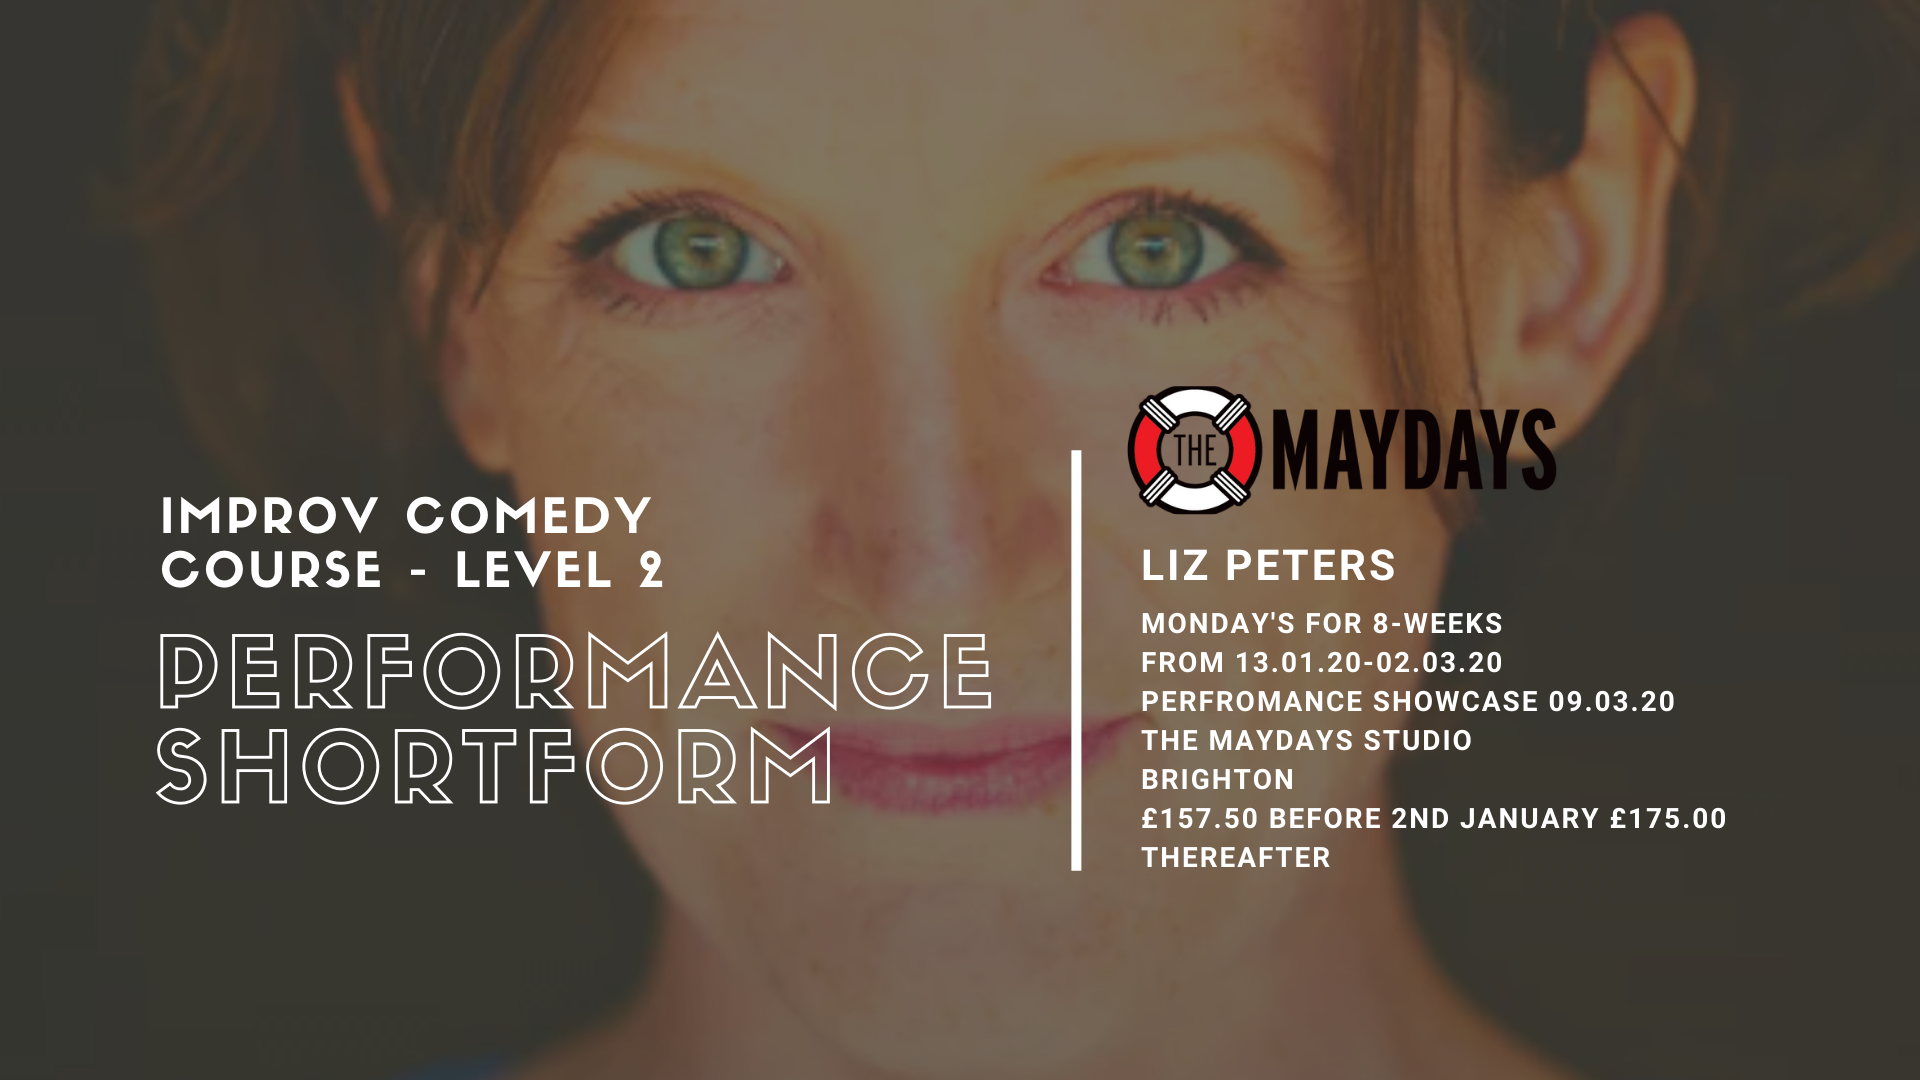 The Maydays Performance Shortform Improvisation Comedy Course